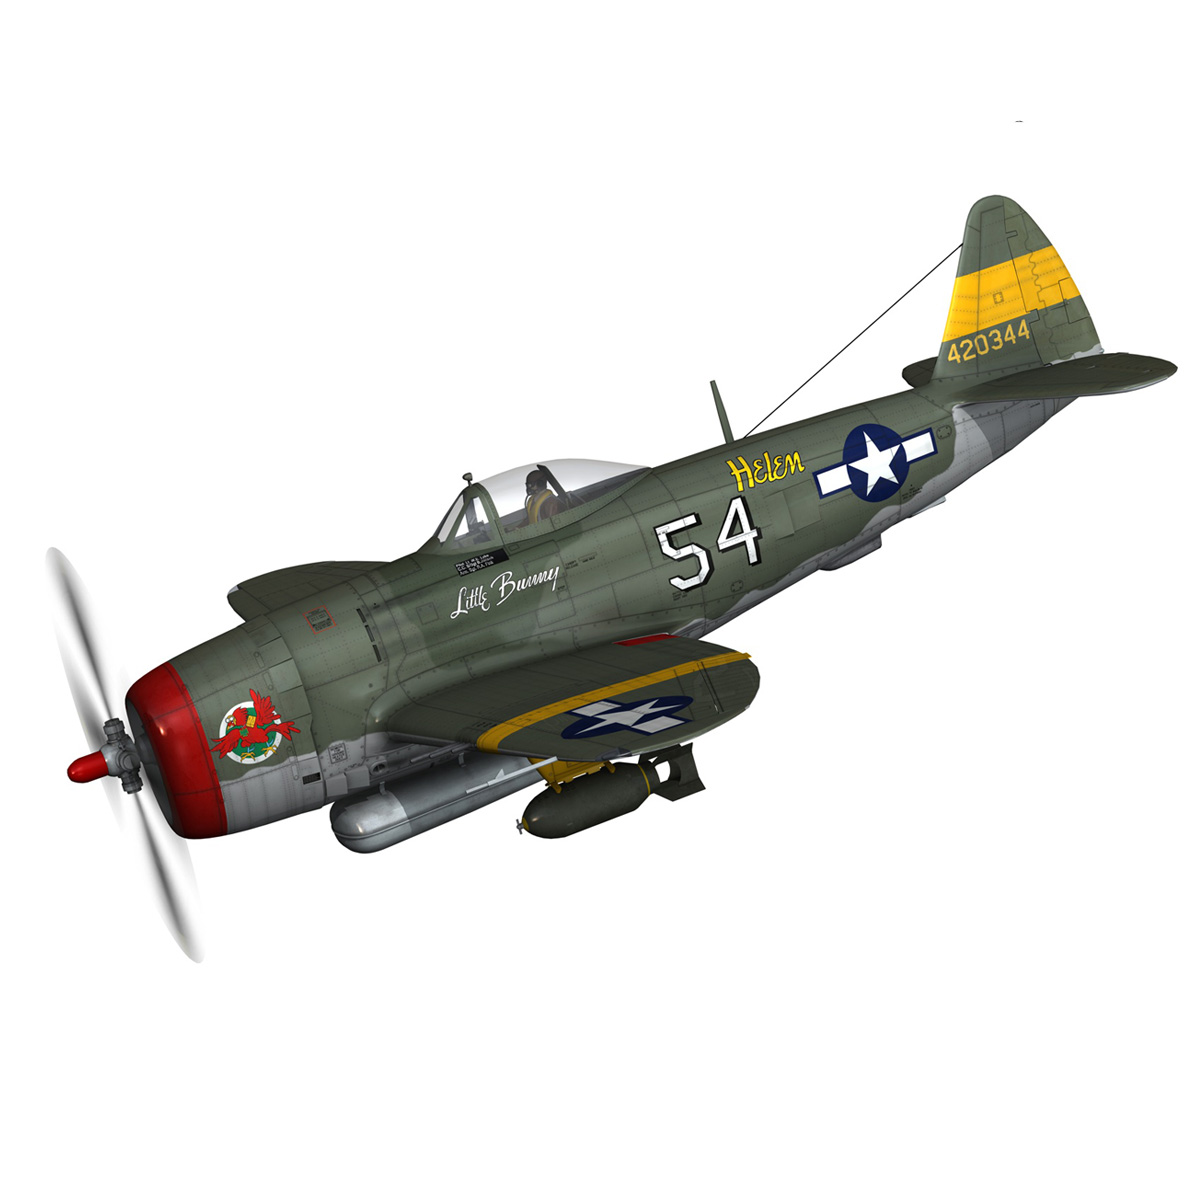 republic p-47d thunderbolt – little bunny 3d model fbx c4d lwo obj 274221